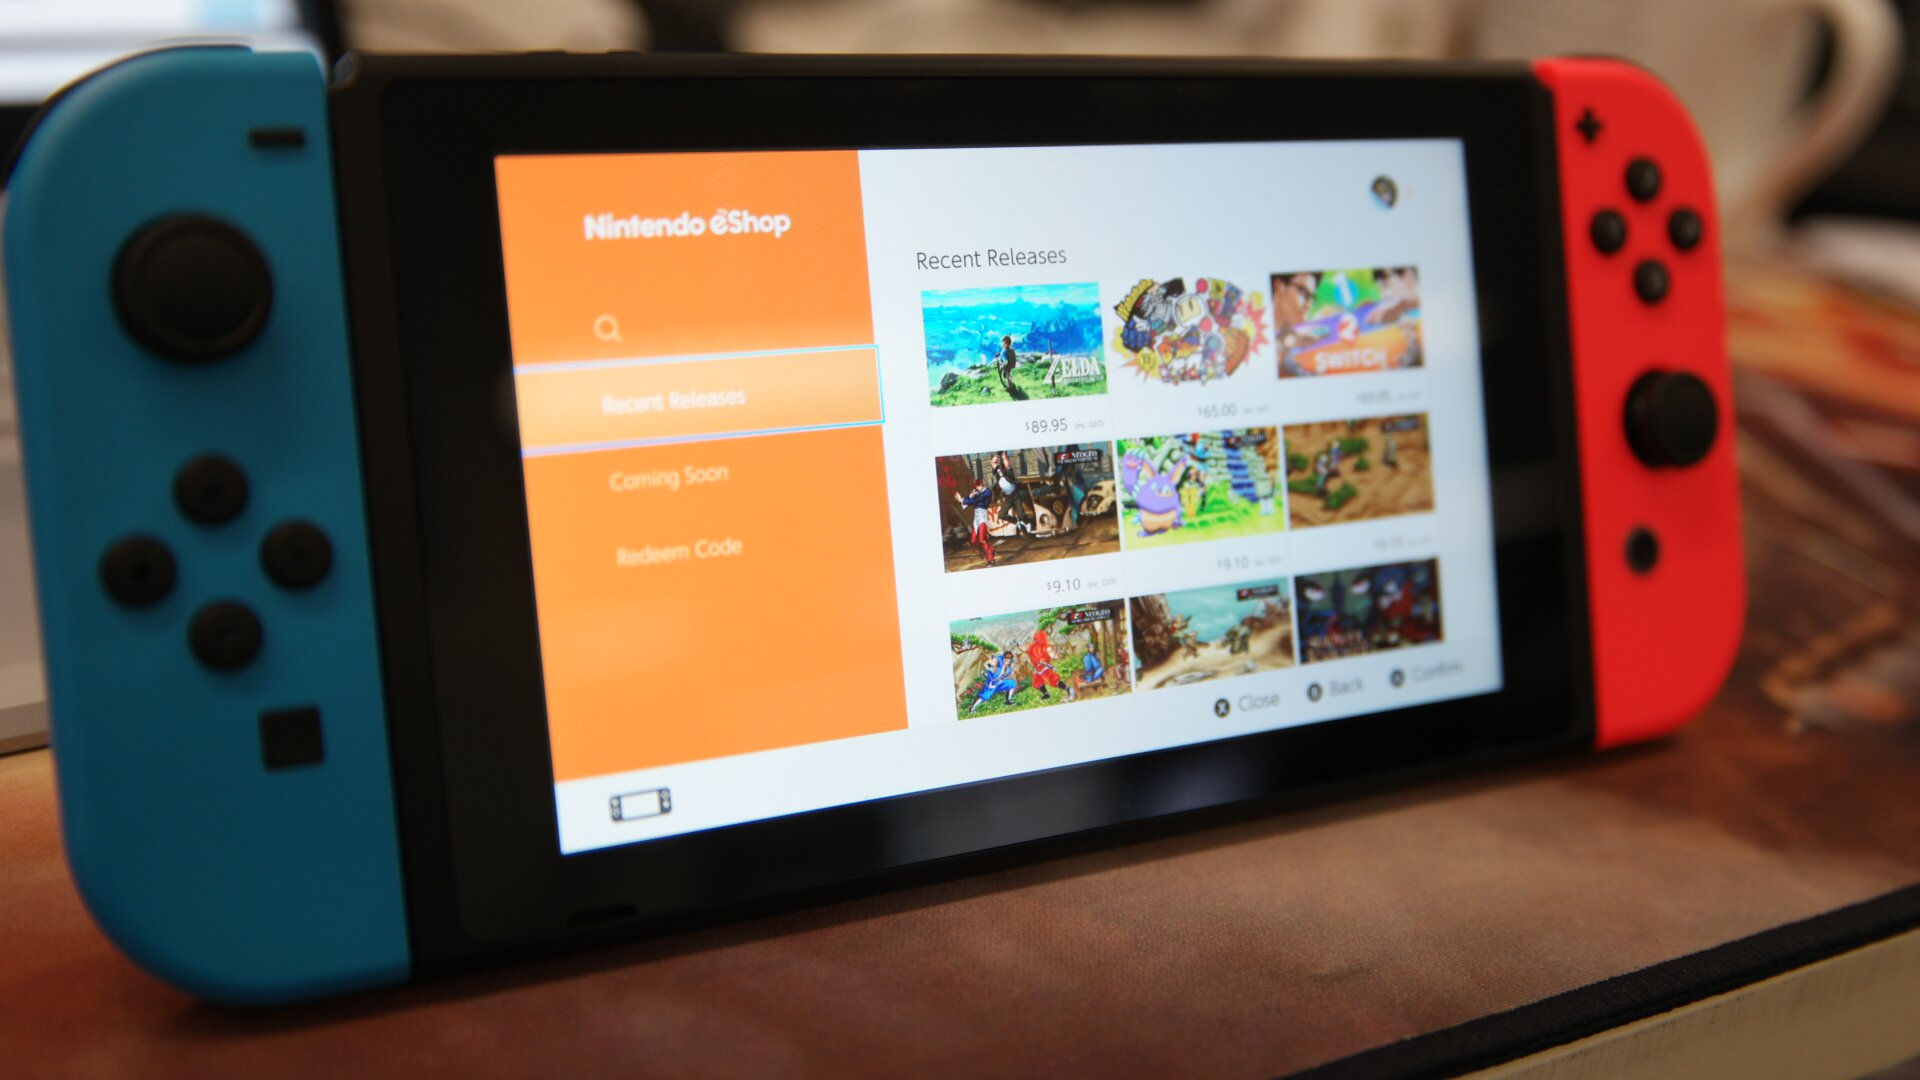 User Reviews are Being Implemented to the Nintendo eShop